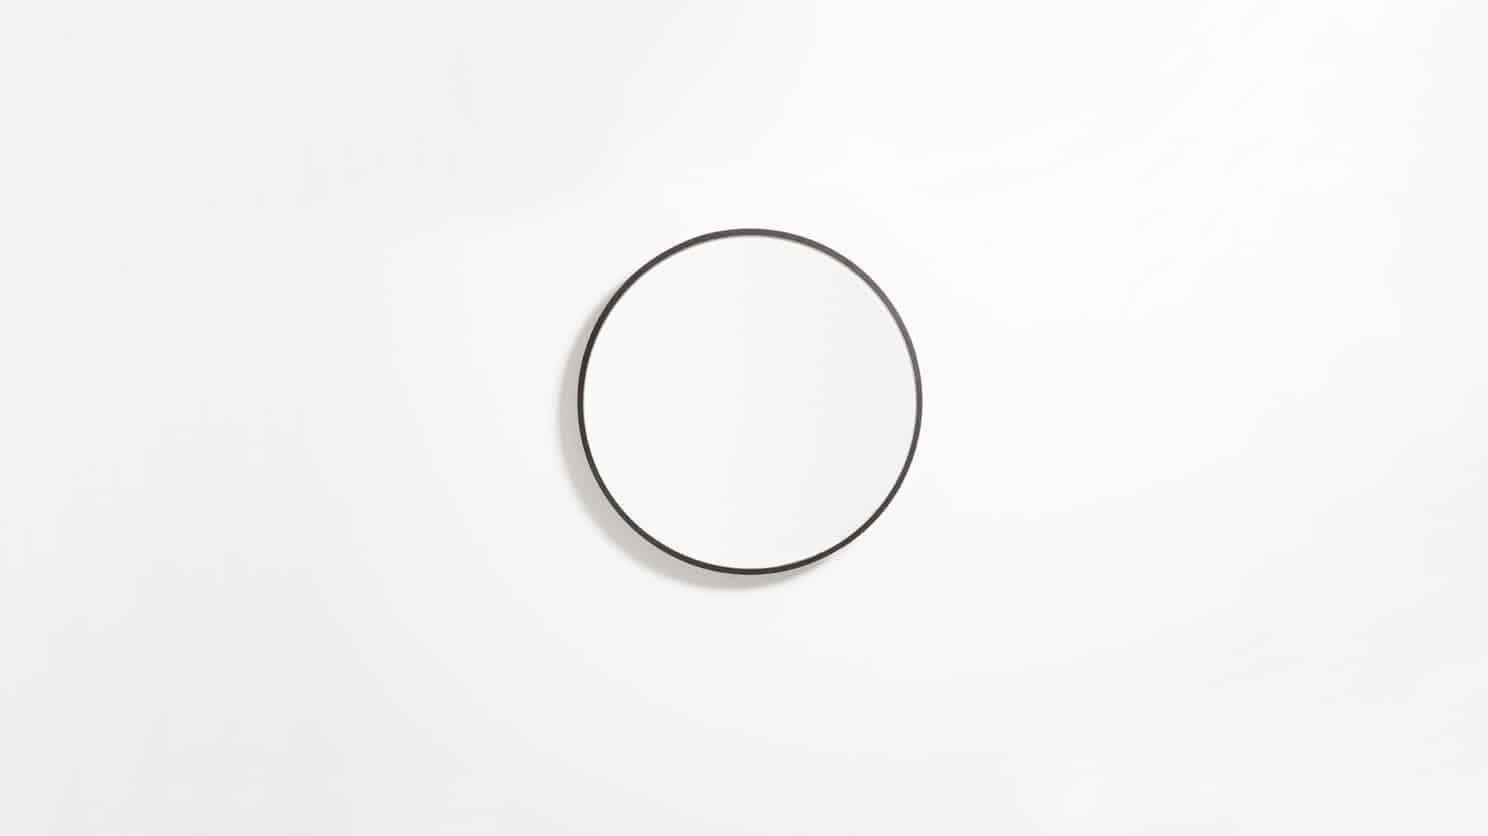 3130 042 1 2 mirror conner small black front 1